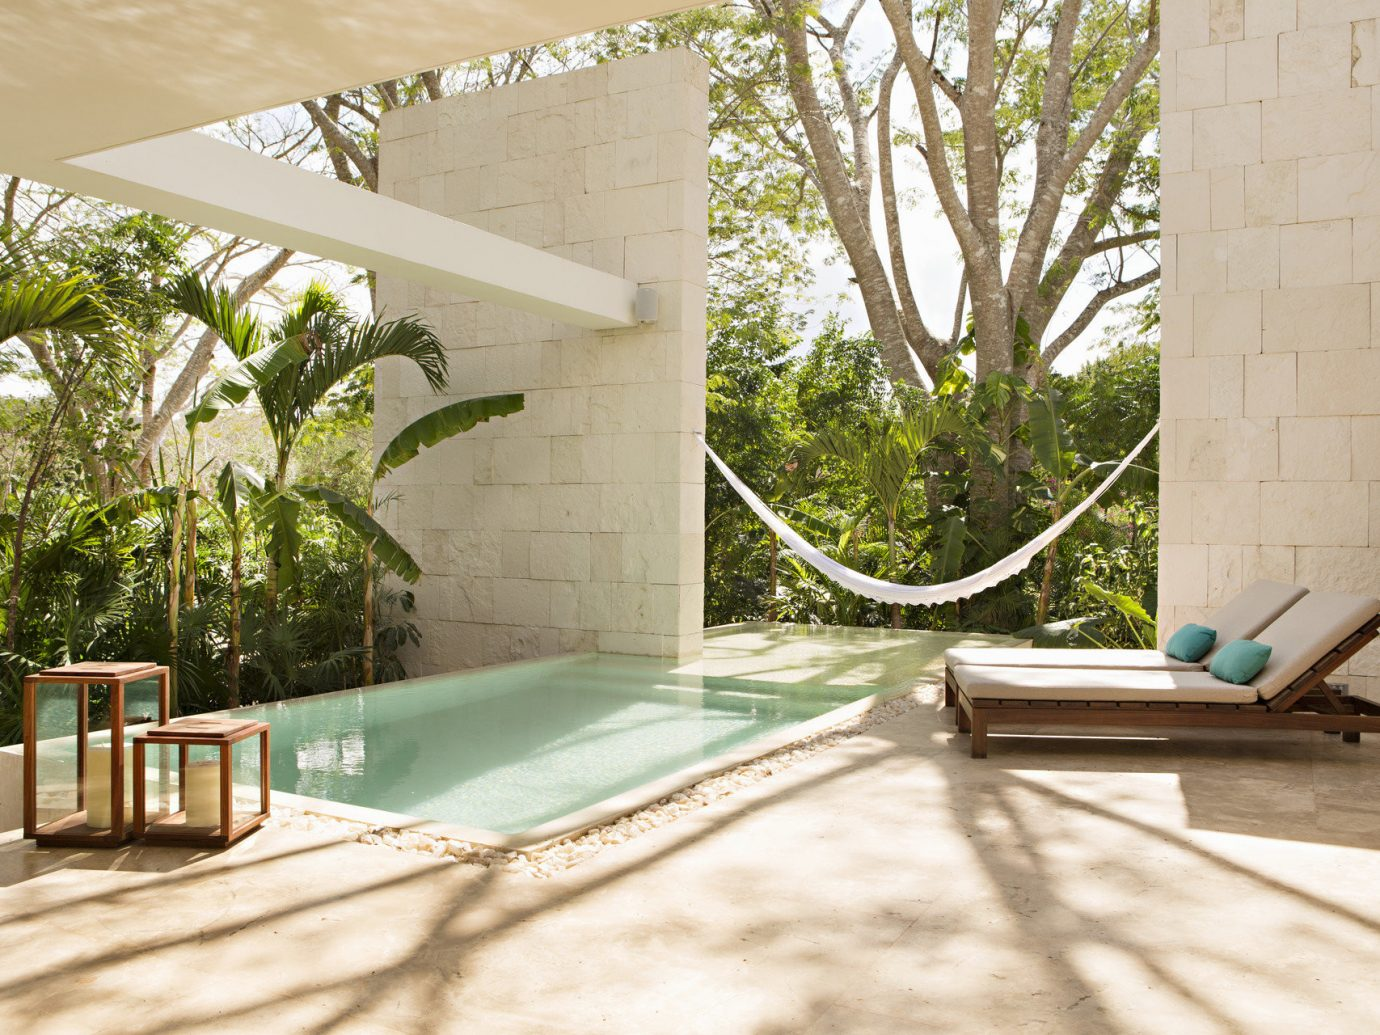 Private pool at Chable Resort, Yucatan